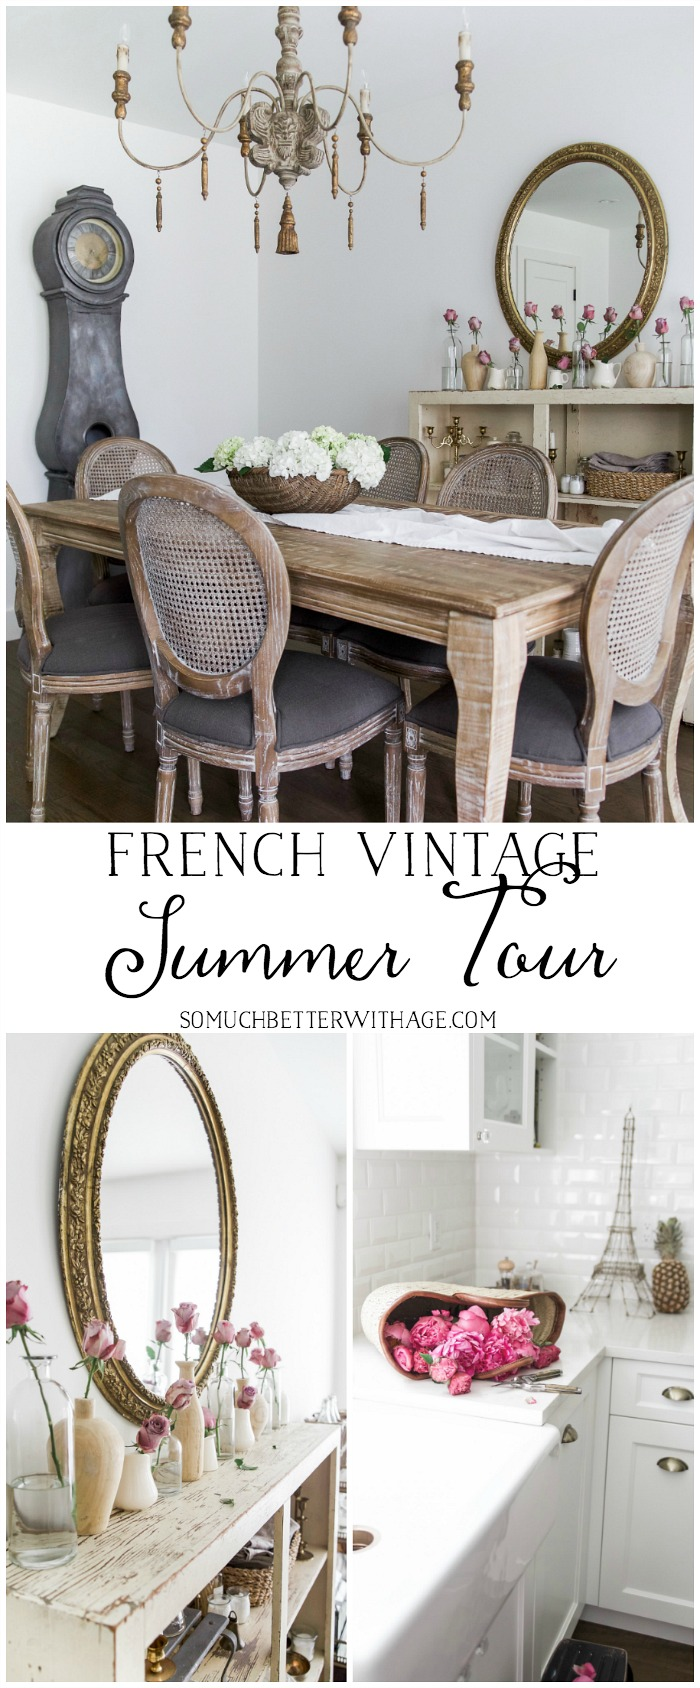 French Vintage Summer Tour